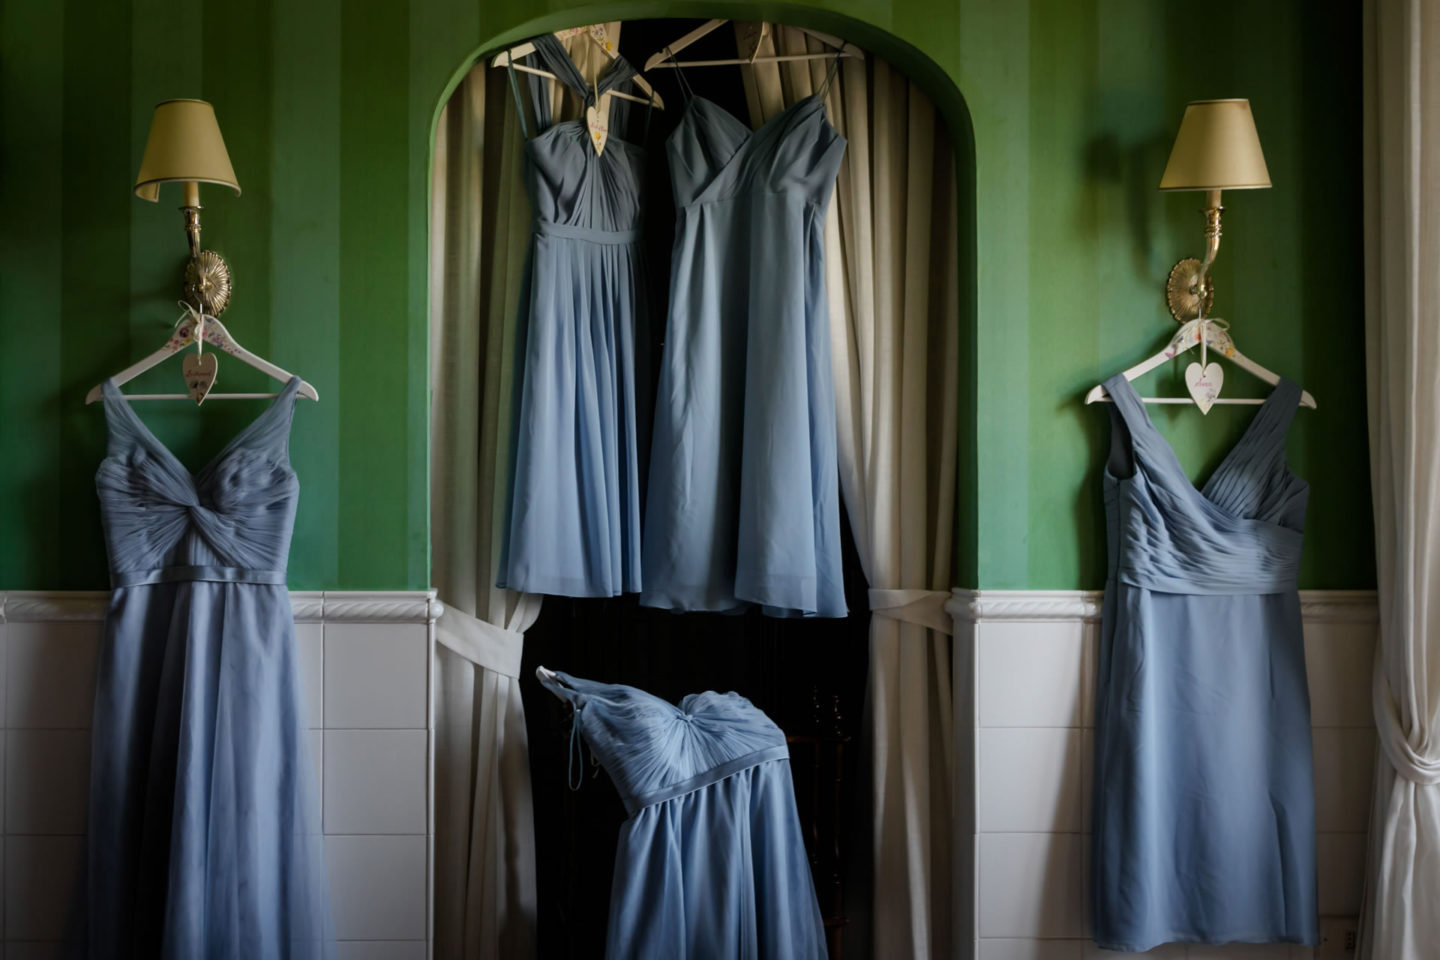 Bridesmaids :: Amazing wedding day at Il Borro :: Luxury wedding photography - 2 :: Bridesmaids